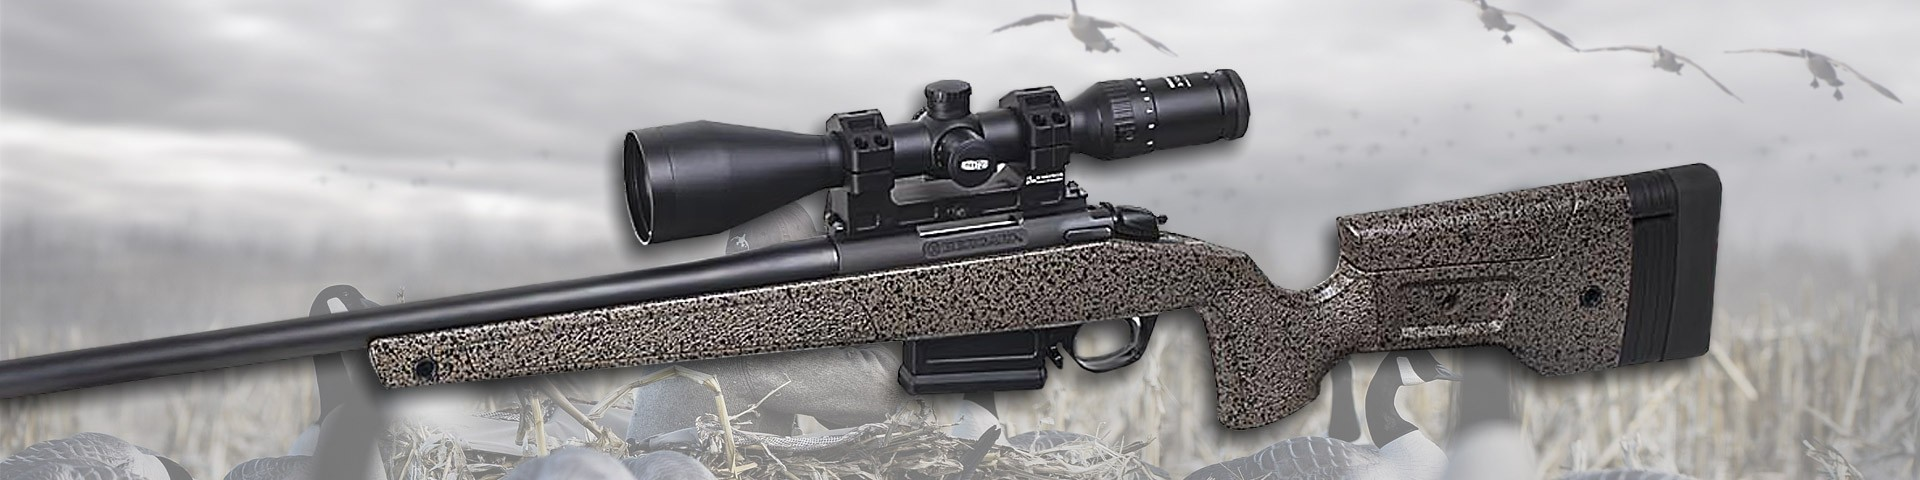 Accessories for your hunting experience